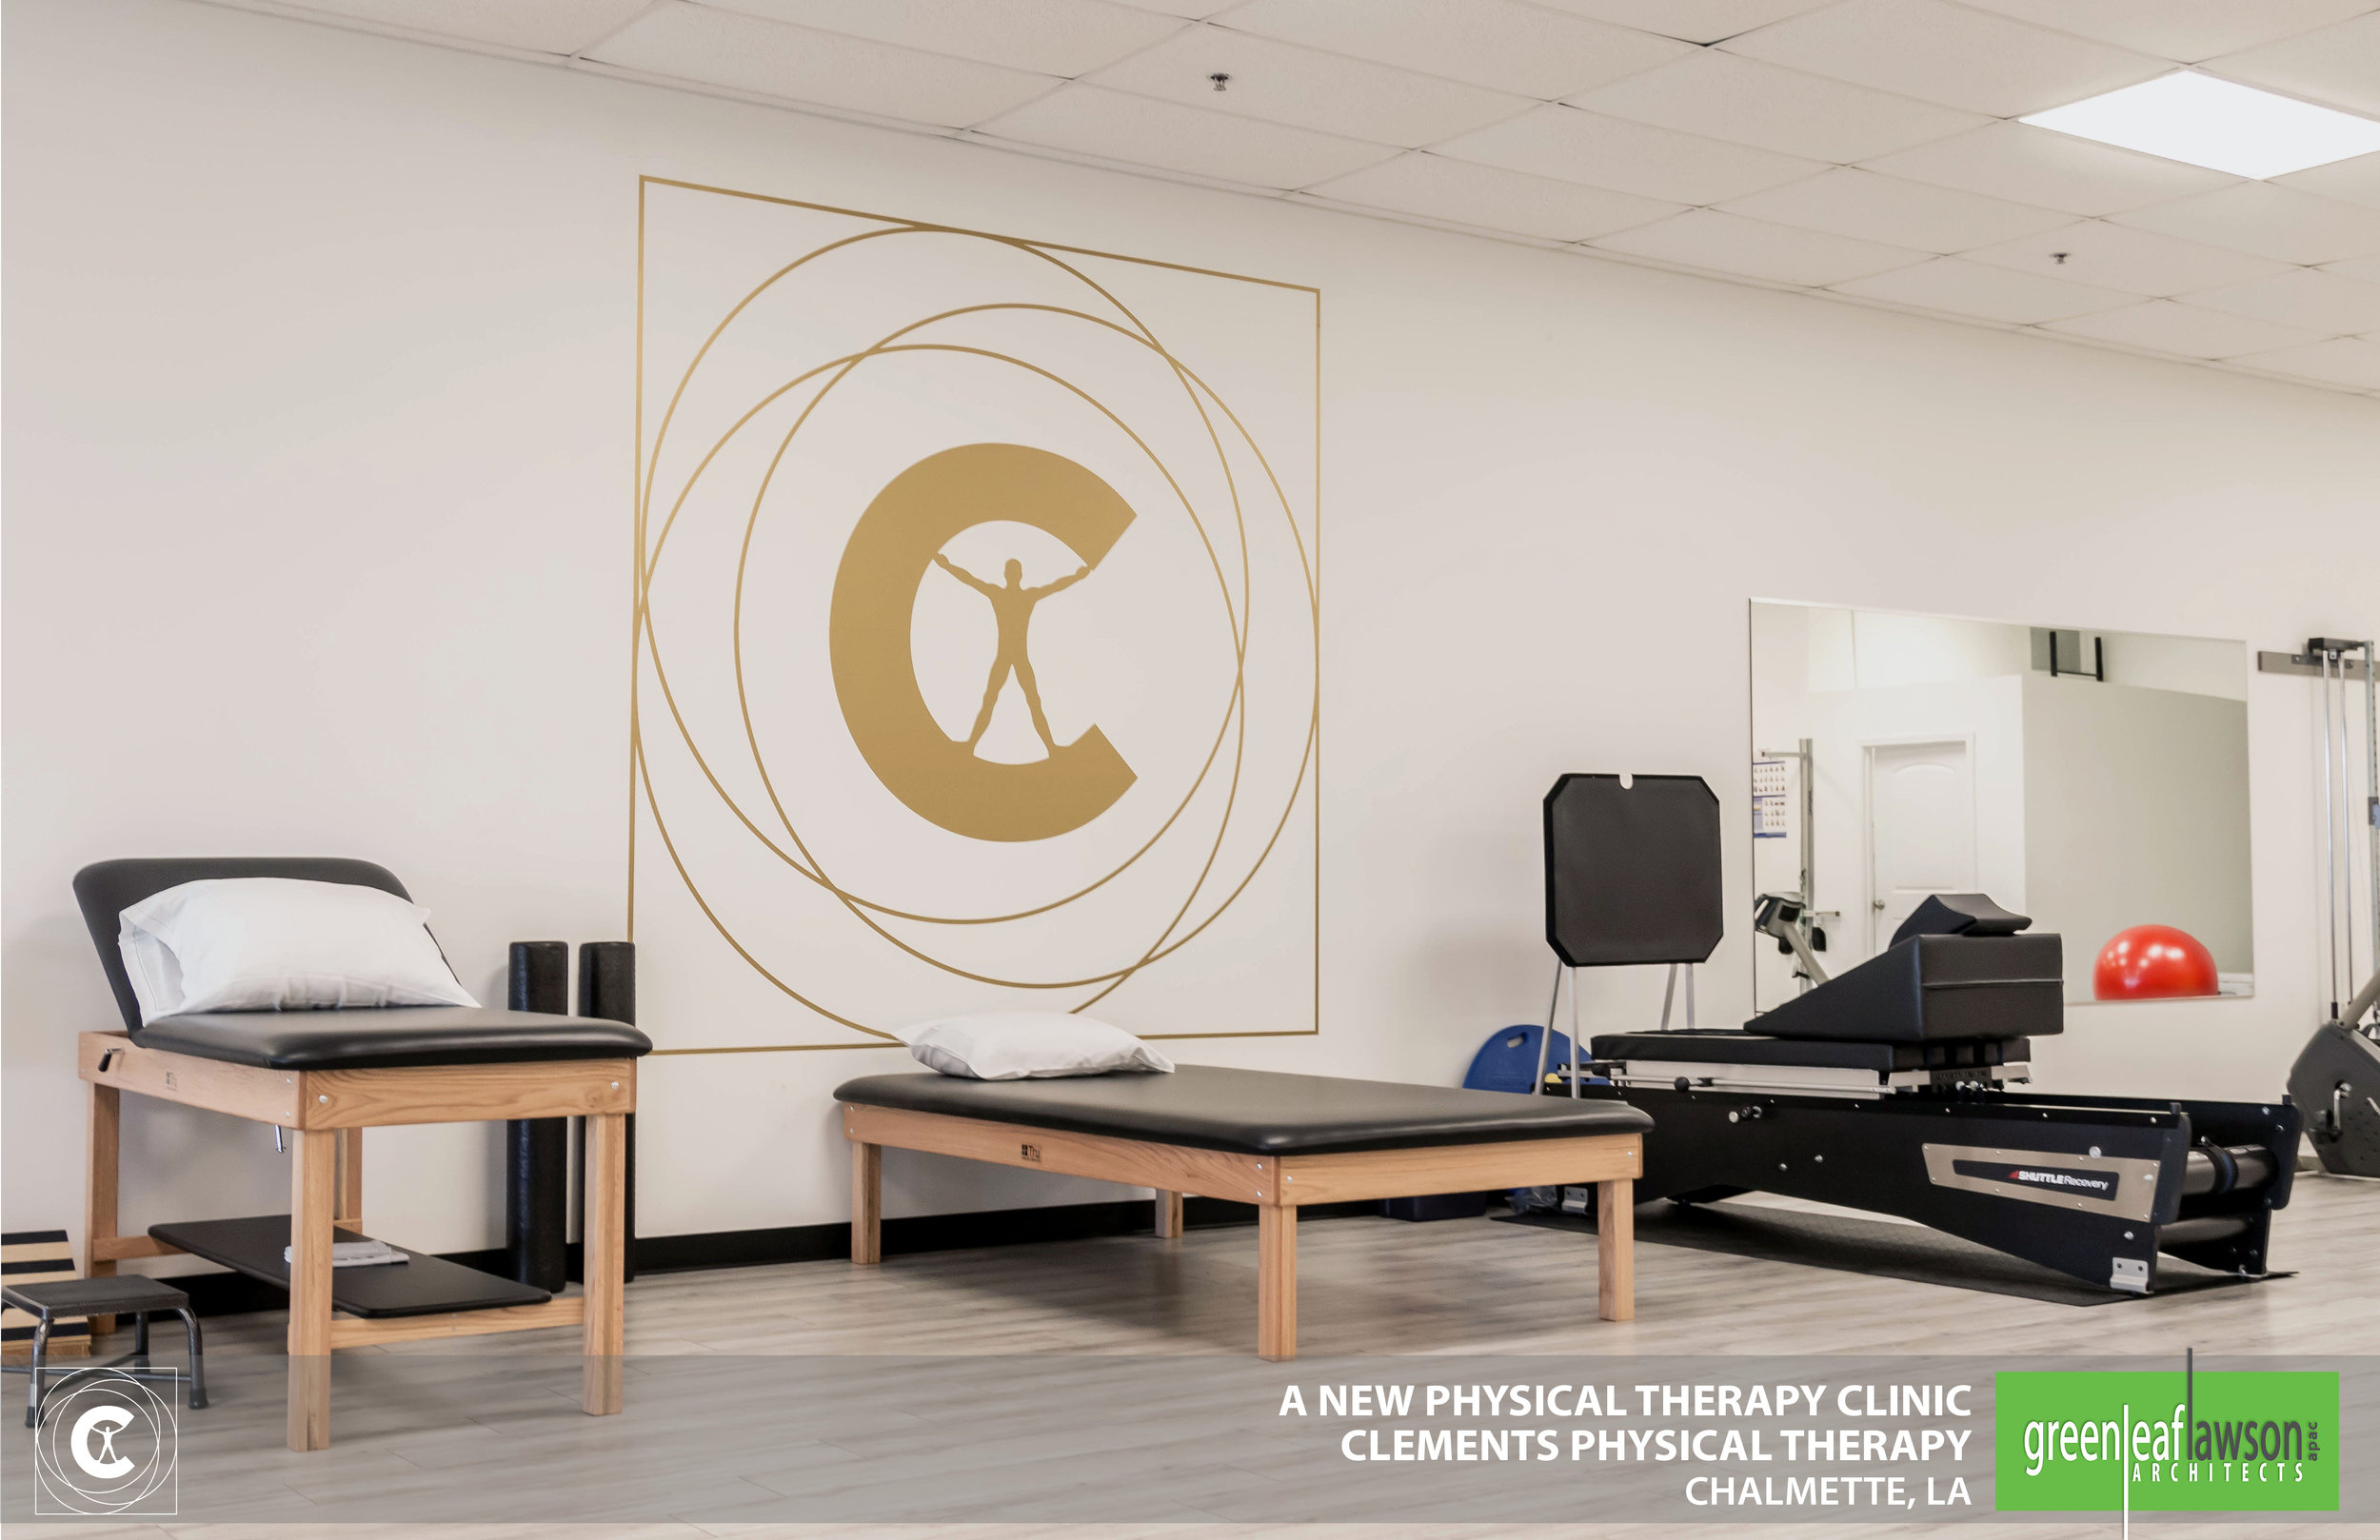 Clements-Physical-Therapy-Greenleaf-Lawson-Architects-3.jpg